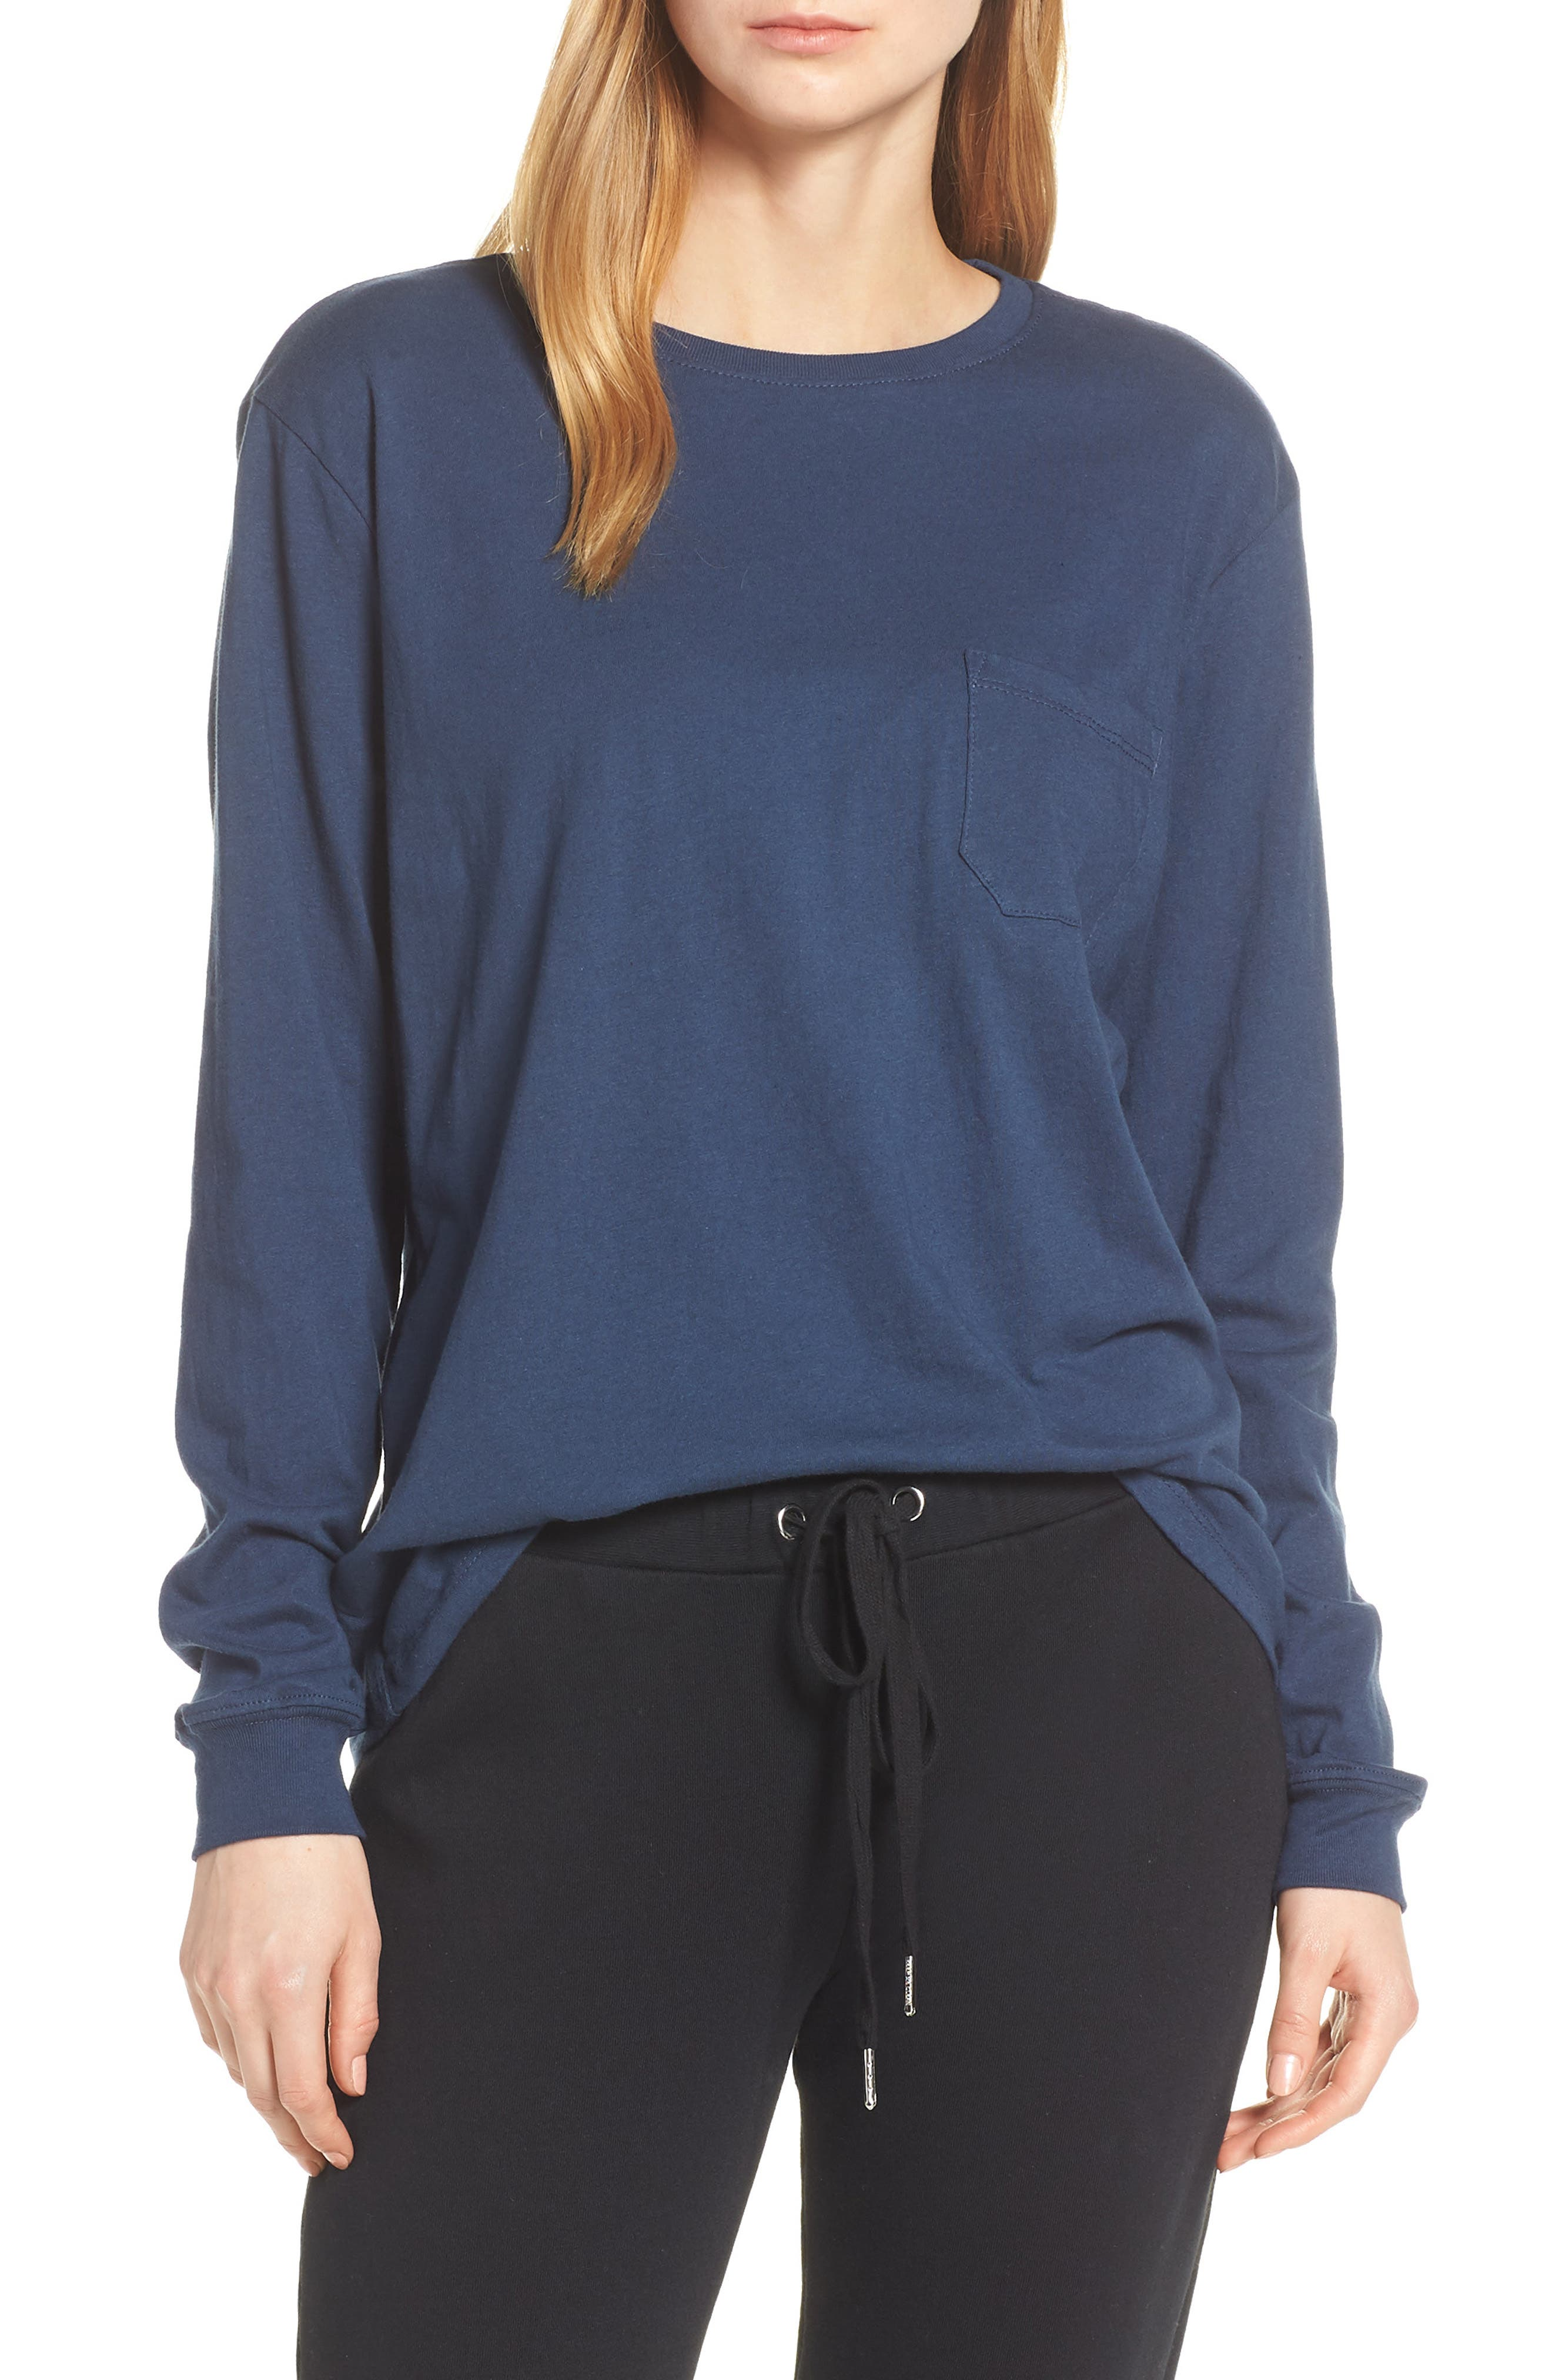 RICHER POORER,                             Long Sleeve Pocket Tee,                             Main thumbnail 1, color,                             NAVY